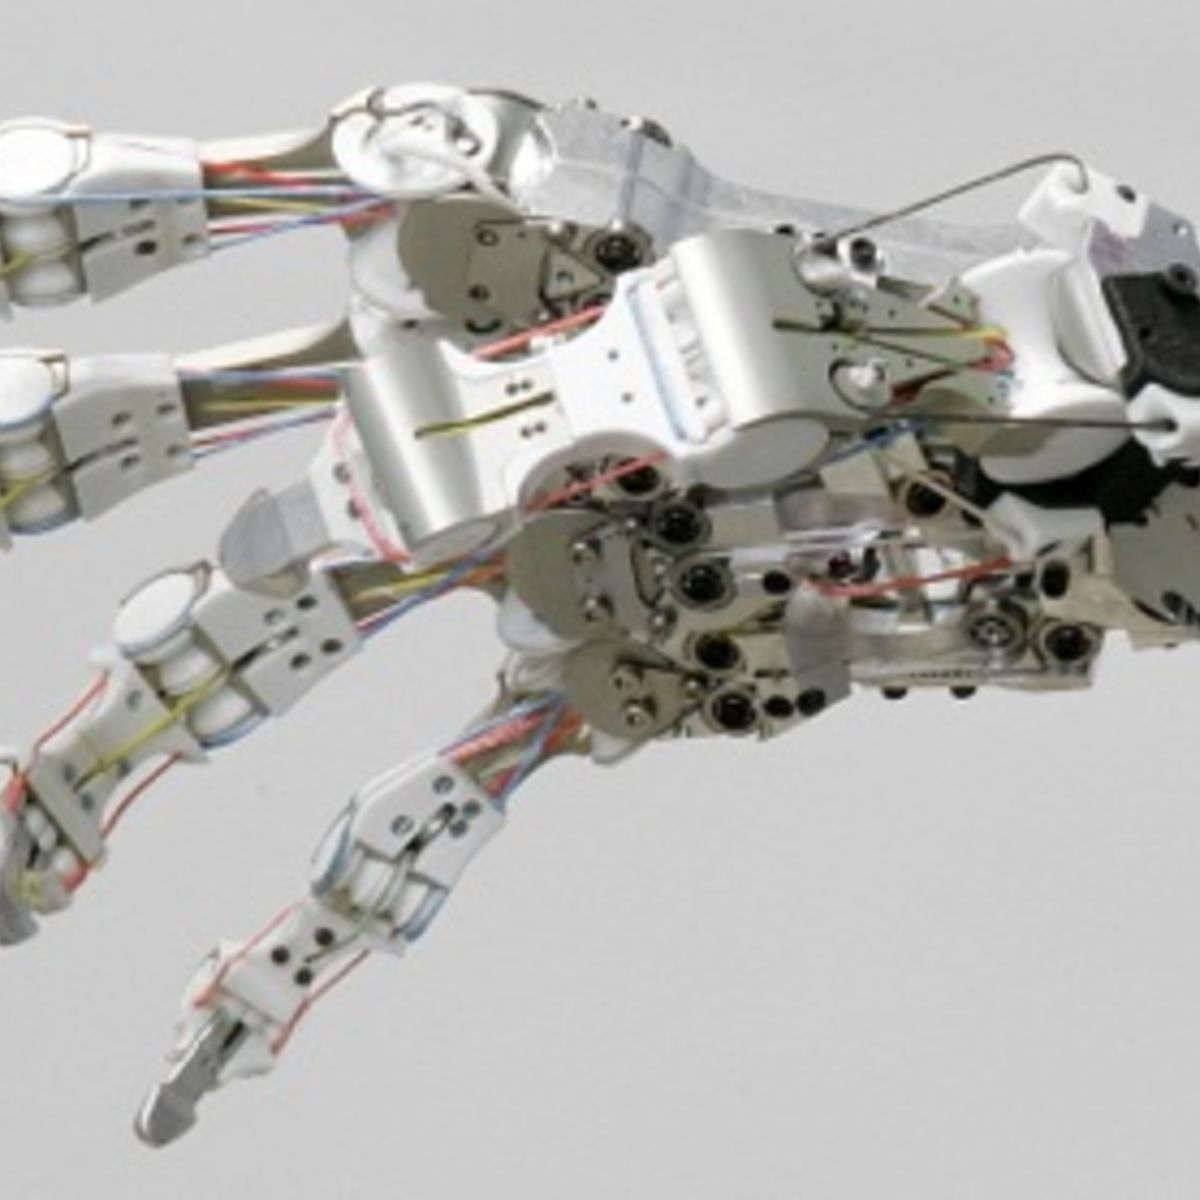 Inventors risk robot uprising by creating real-life Terminator hand ...